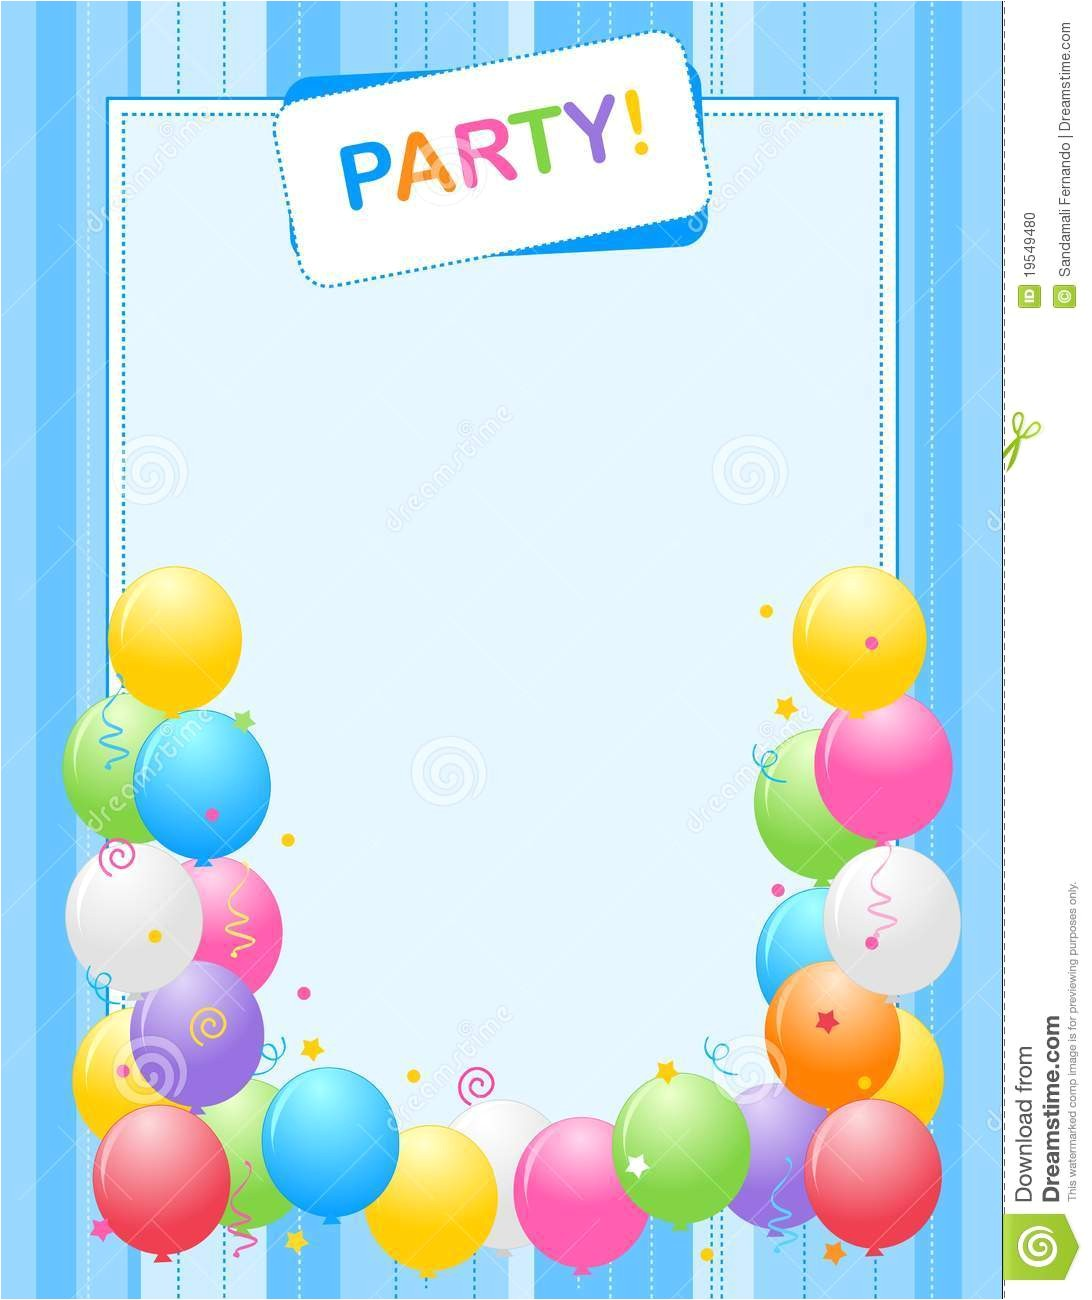 Birthday Invitation Frames Party Invitation Frame Stock Vector Illustration Of